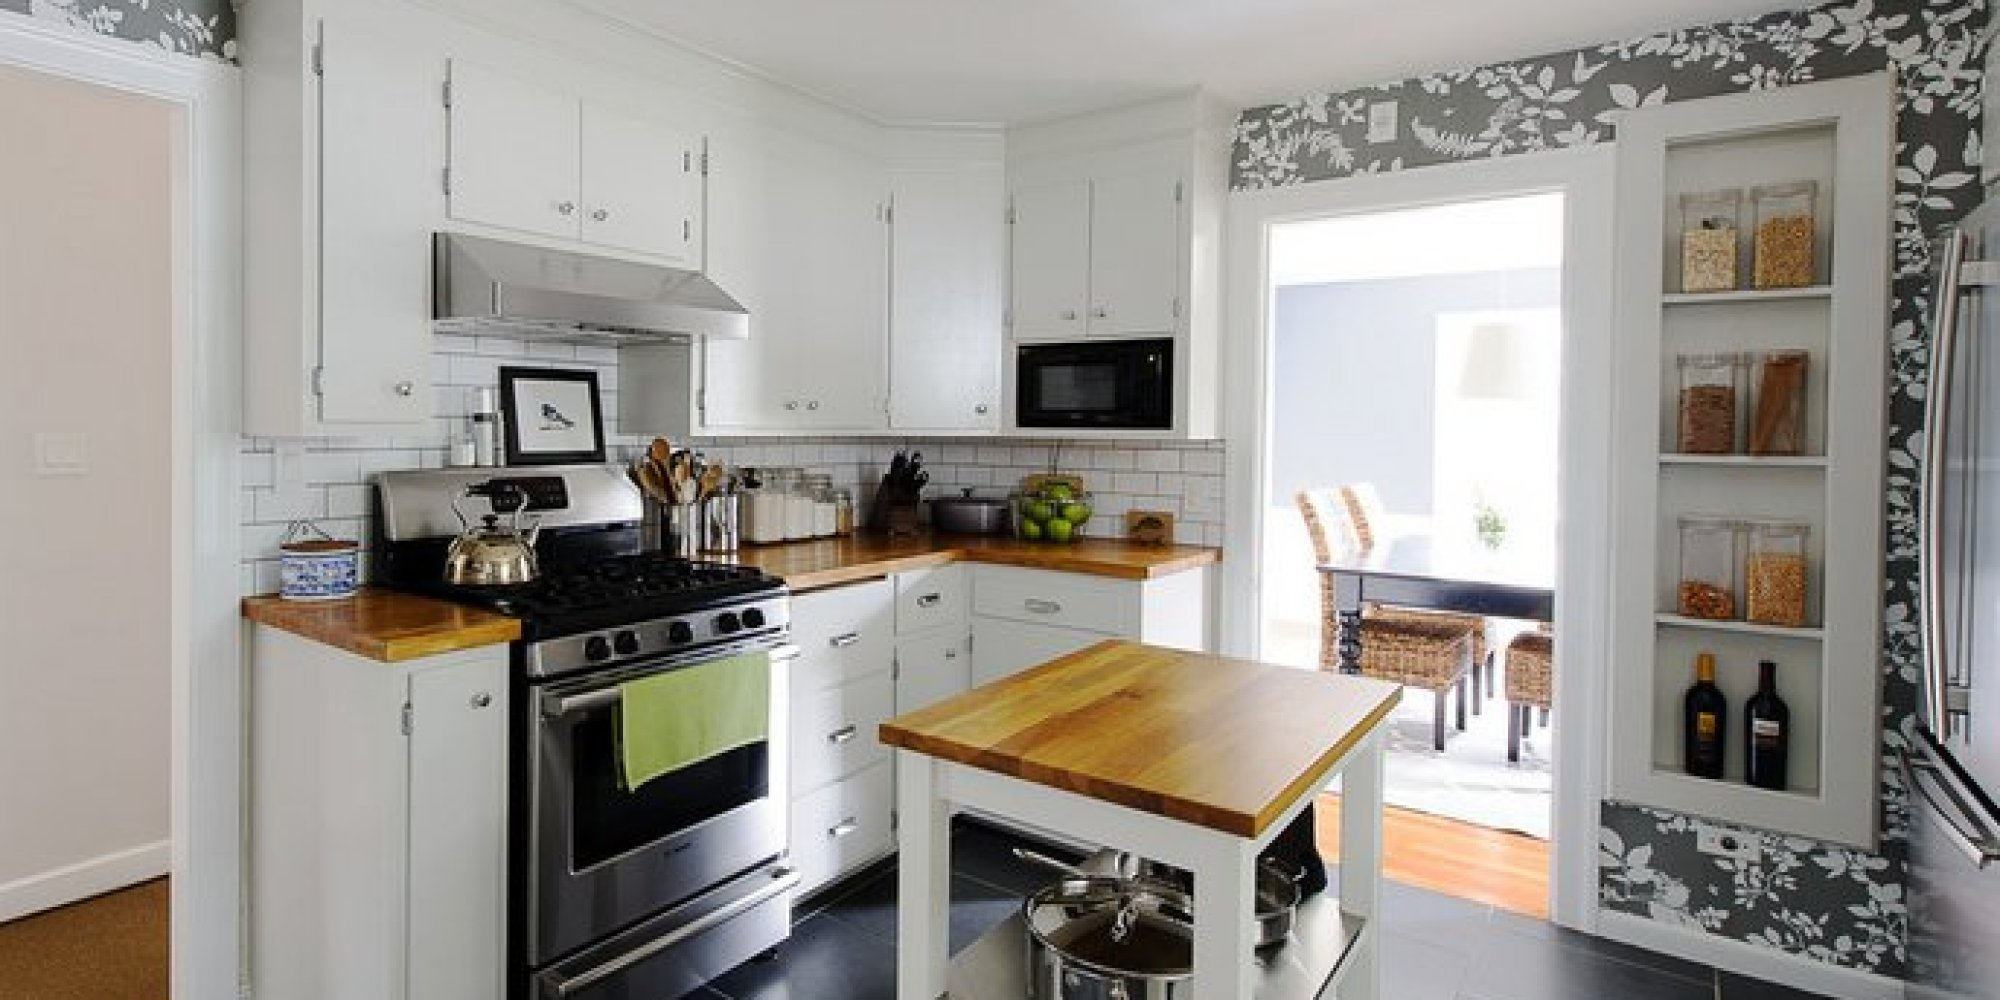 19 Inexpensive Ways To Fix Up Your Kitchen PHOTOS